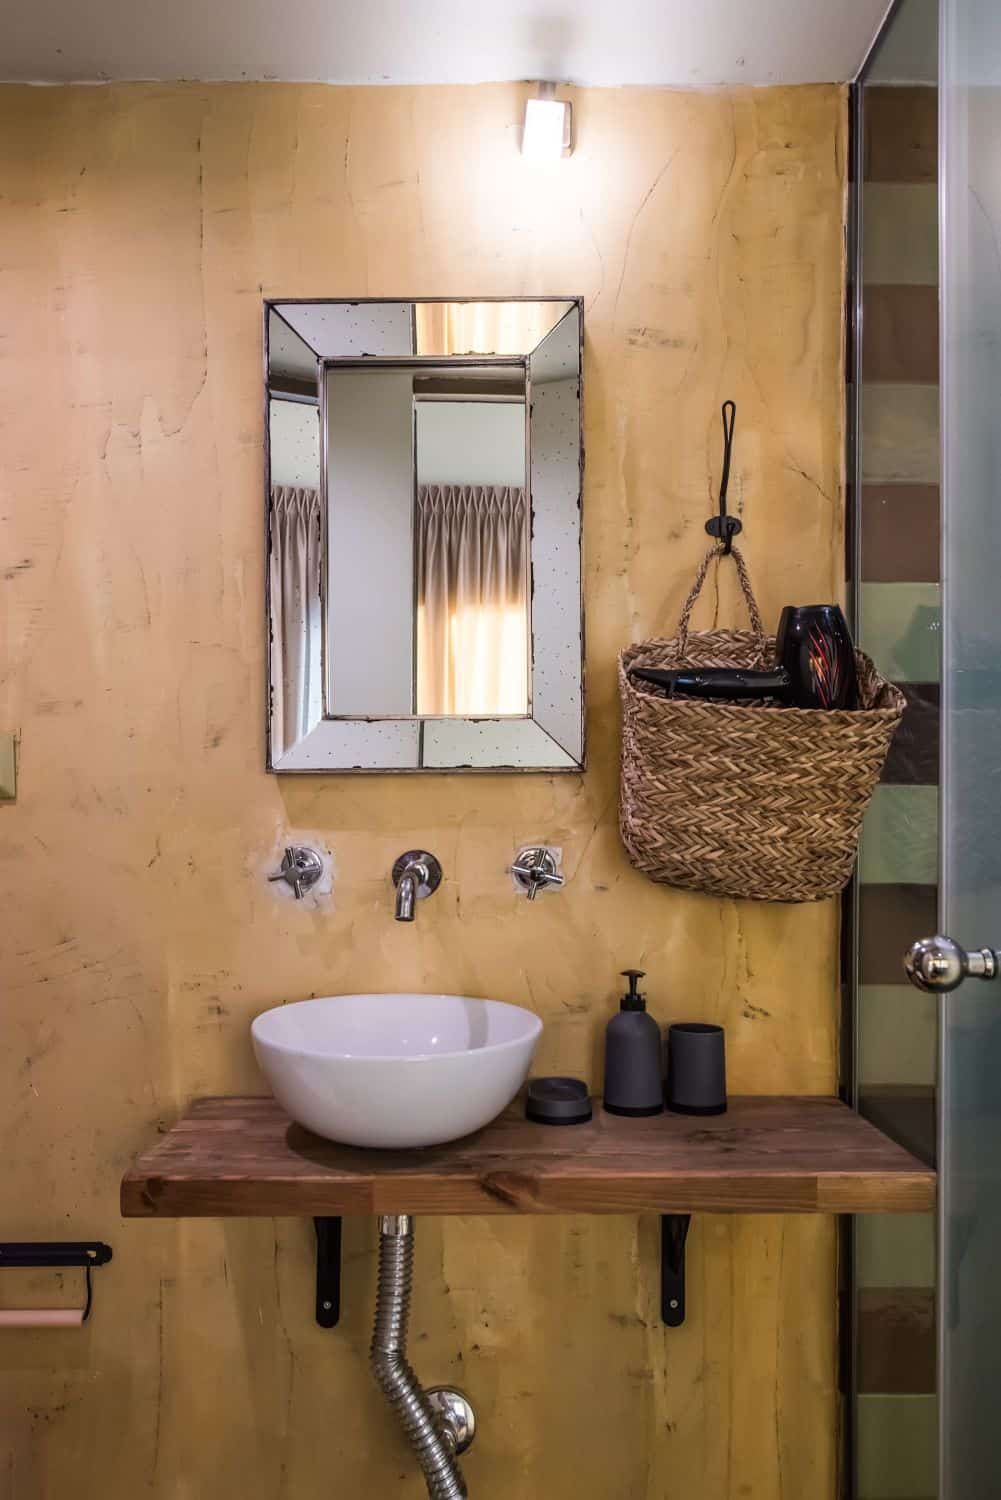 #TheShop Bathroom with Shower and WC